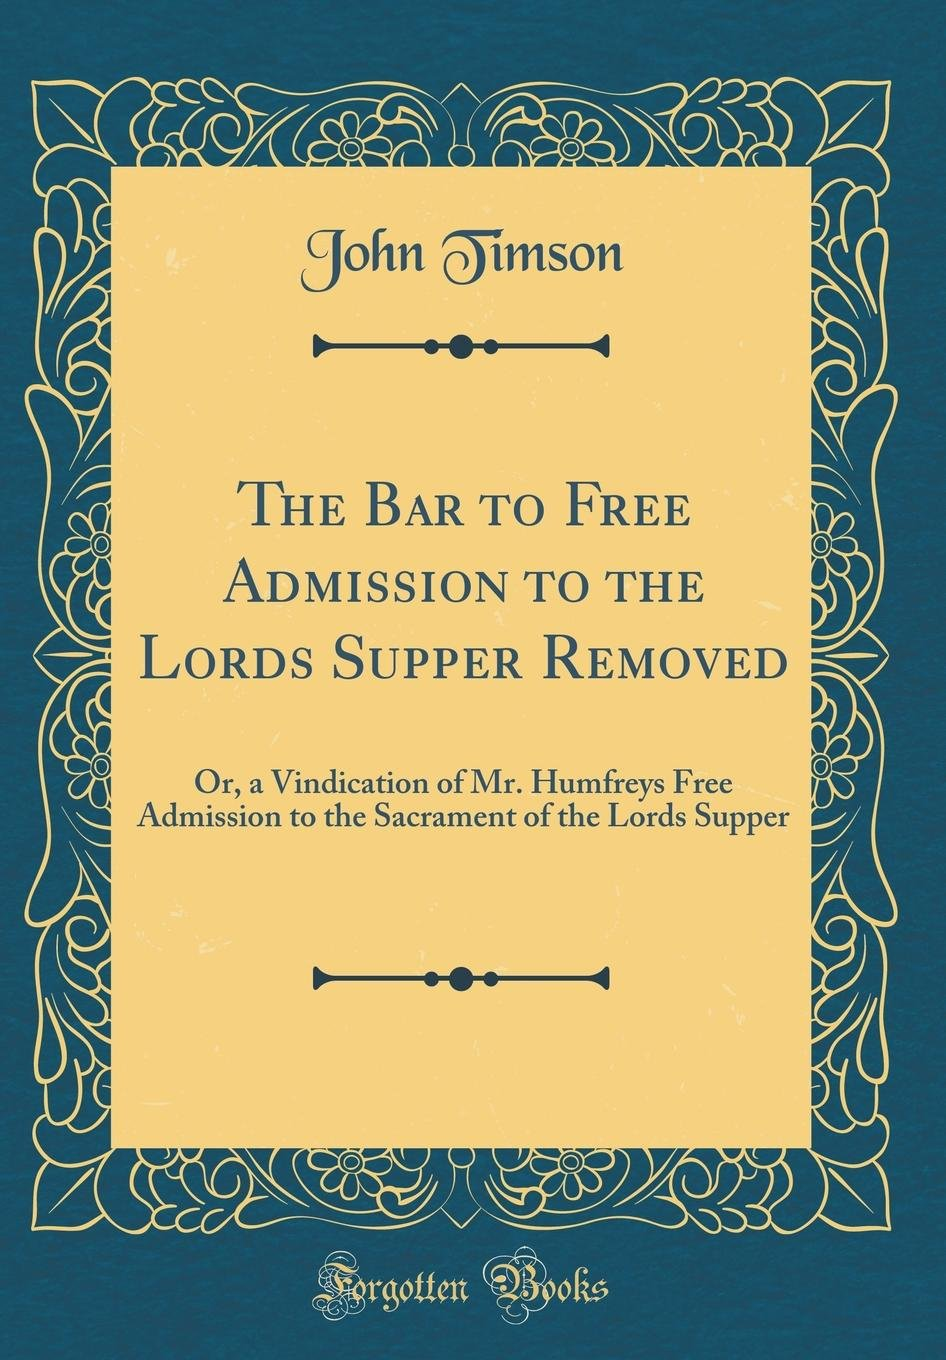 Download The Bar to Free Admission to the Lords Supper Removed: Or, a Vindication of Mr. Humfreys Free Admission to the Sacrament of the Lords Supper (Classic Reprint) pdf epub